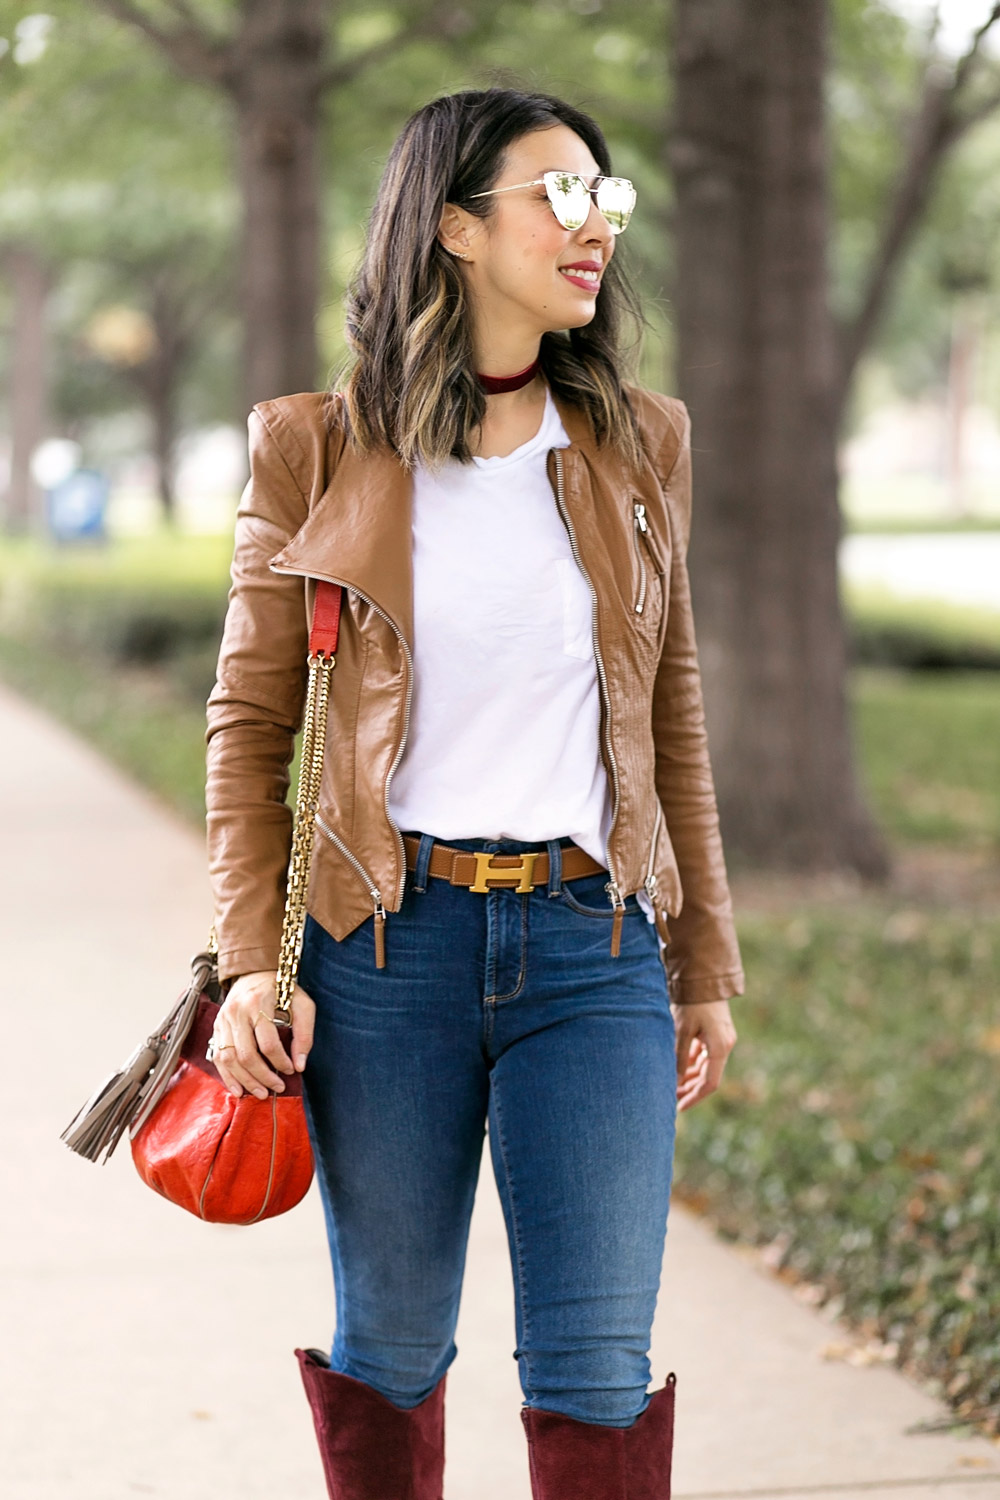 blanknyc faux leather jacket with white tee, hermes belt, NYDJ alina uplift skinny jeans, and chloe boudoir bag